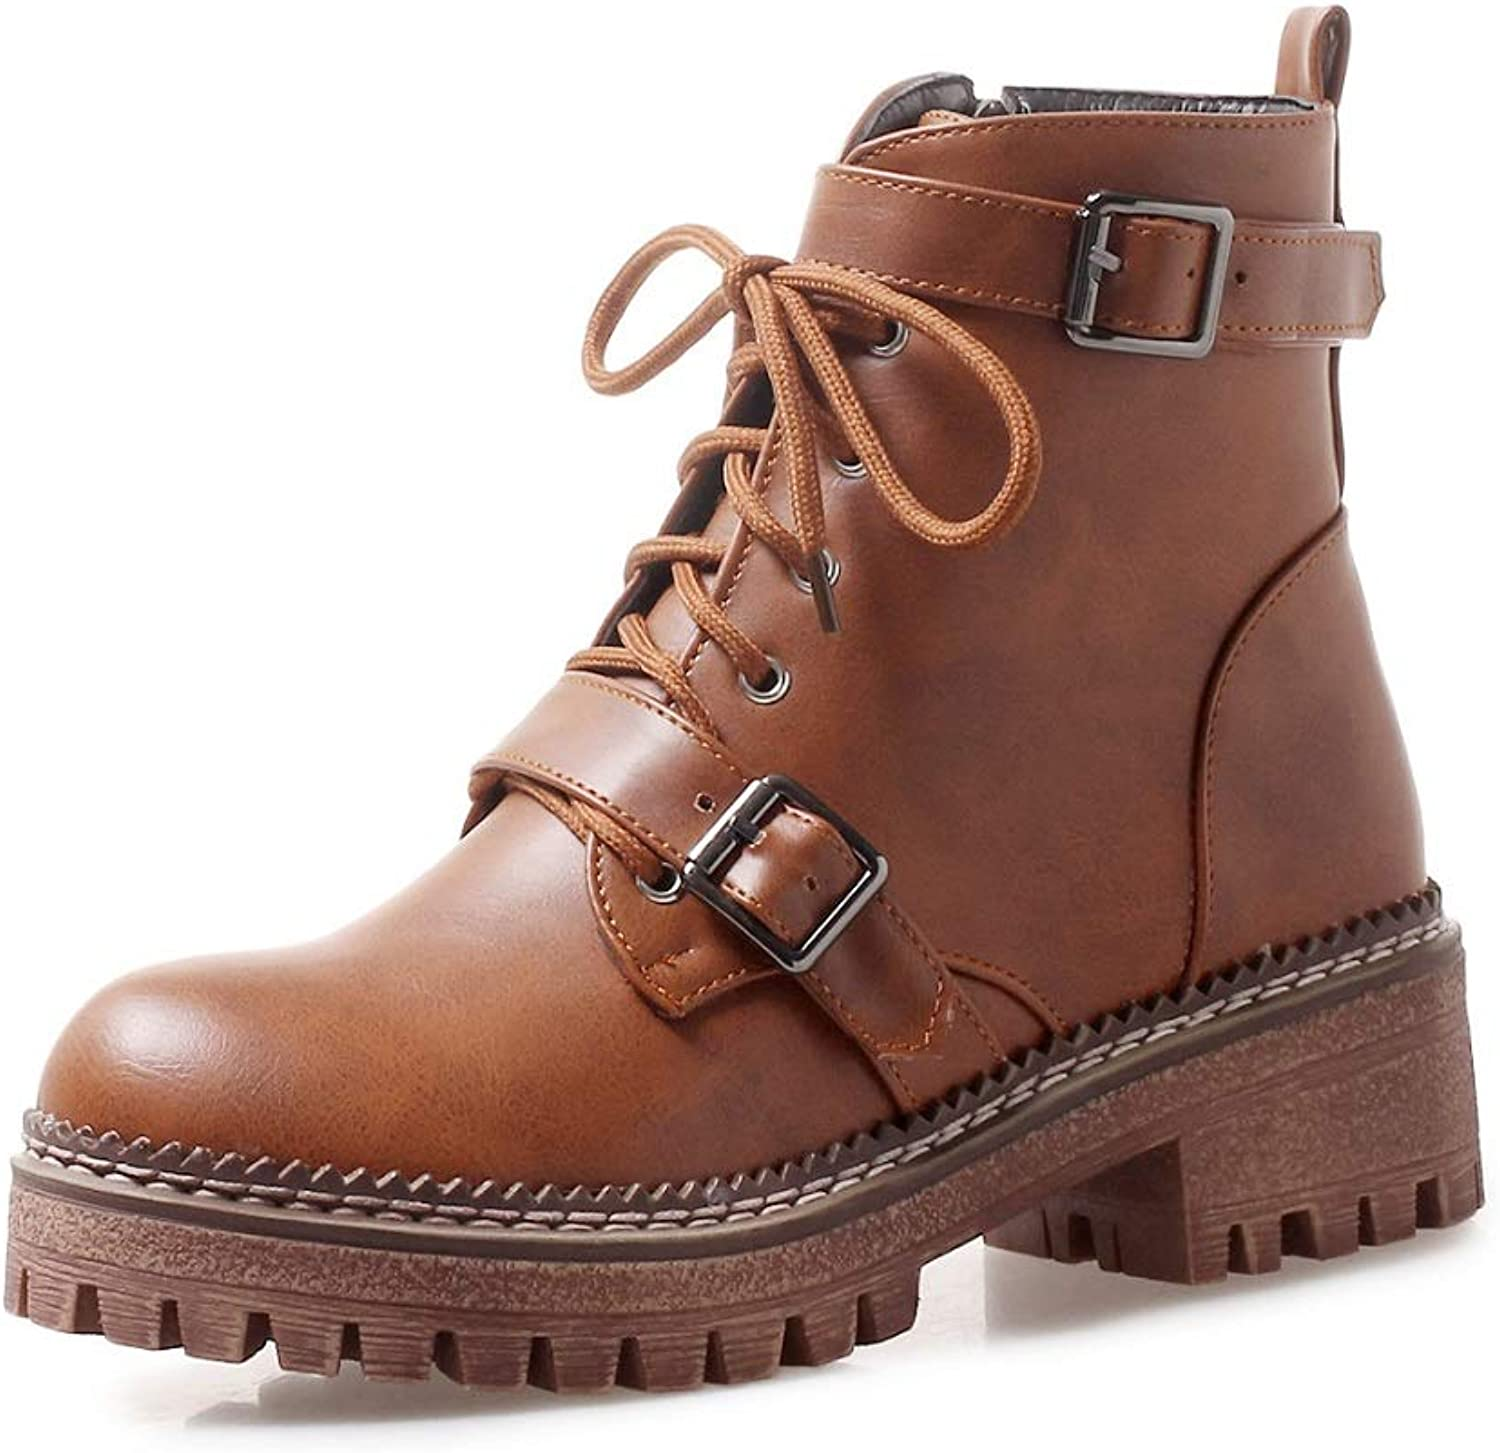 Womens Ankle Boots Casual Boots Faux Fur Lined Grip Sole Winter Army Combat Boots shoes for Women Size UK 3-8.5